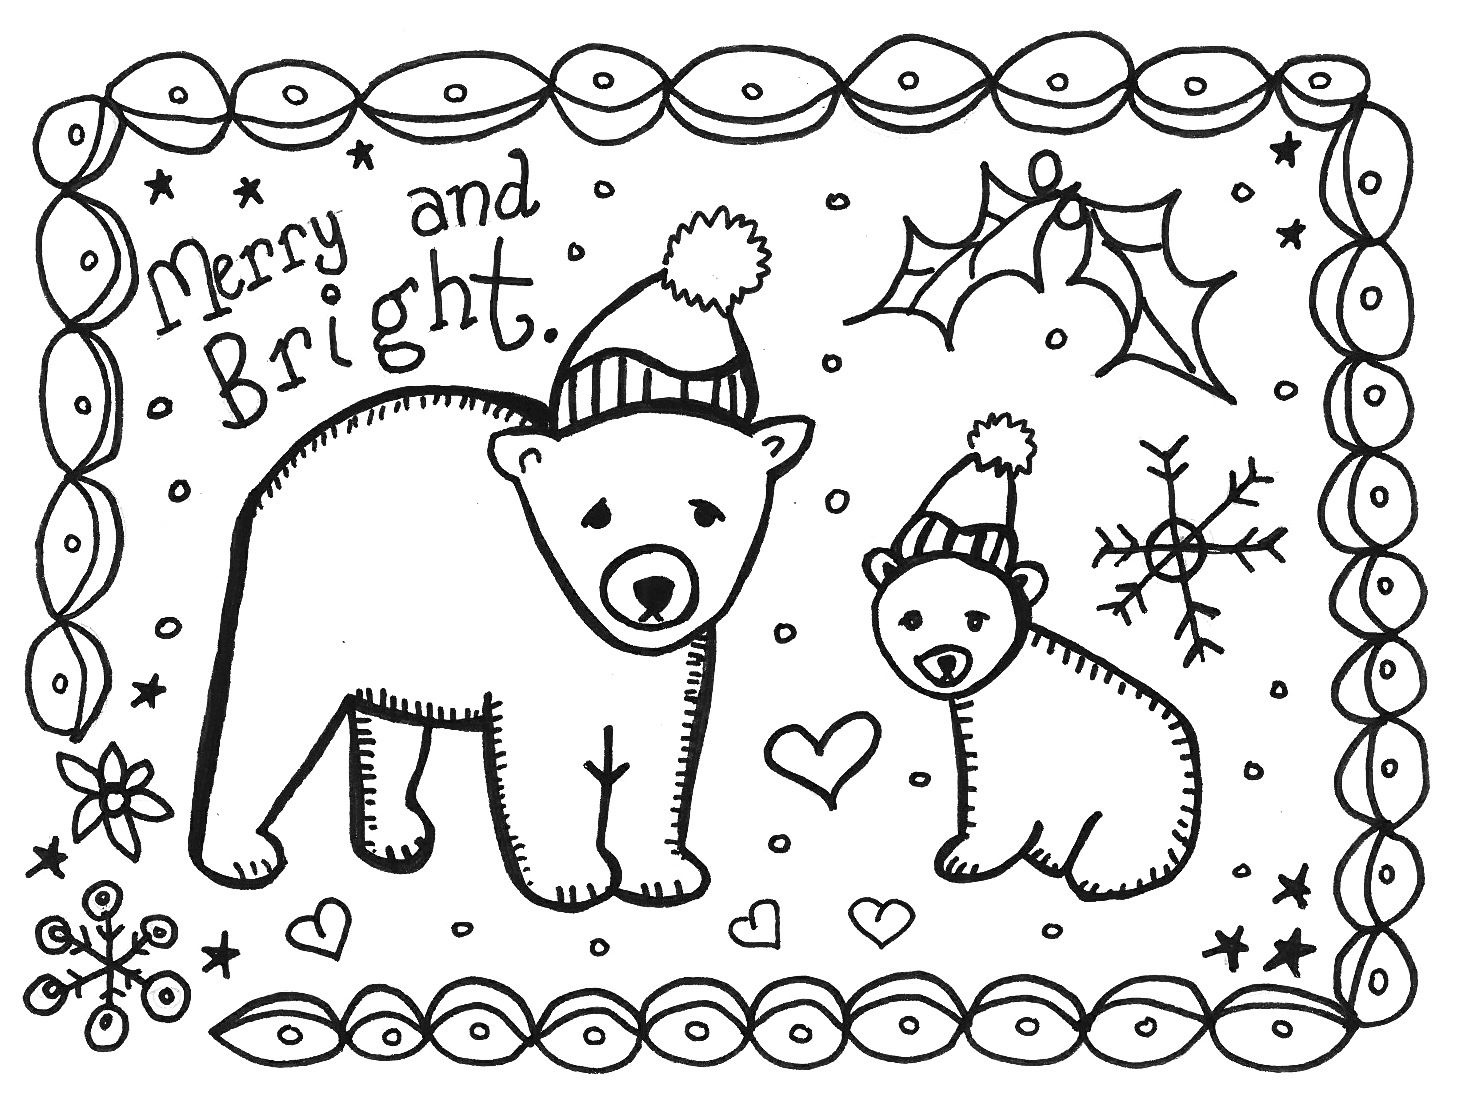 8 Best Images Of Printable Christmas Cards To Color - Free - Free Printable Christmas Cards To Color